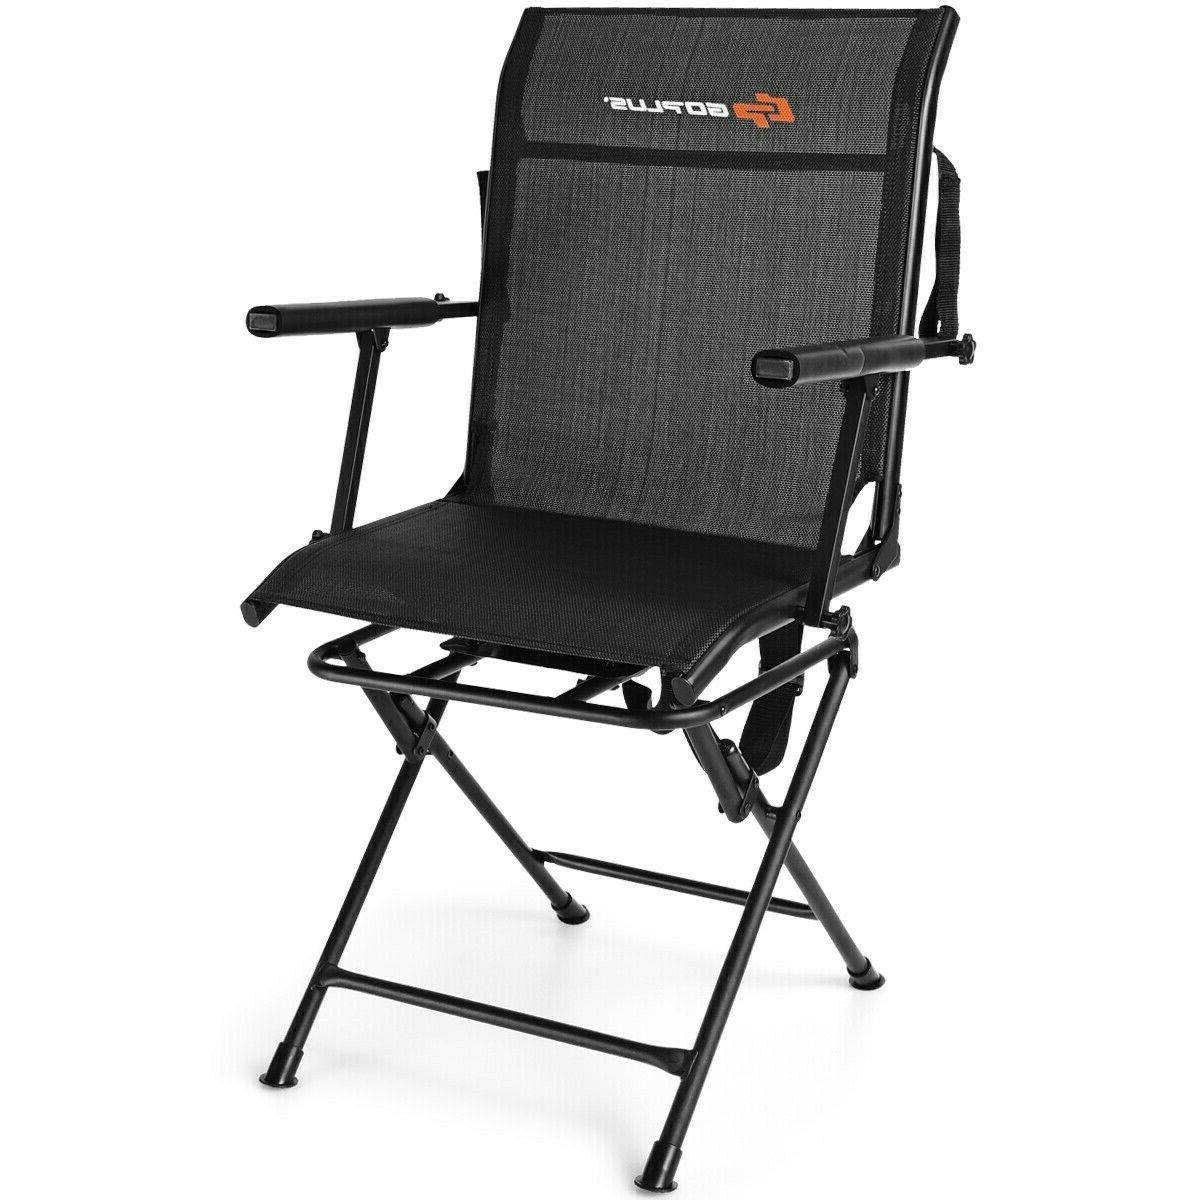 Camping Chair Swivel Folding Portable Foldable With Armrest